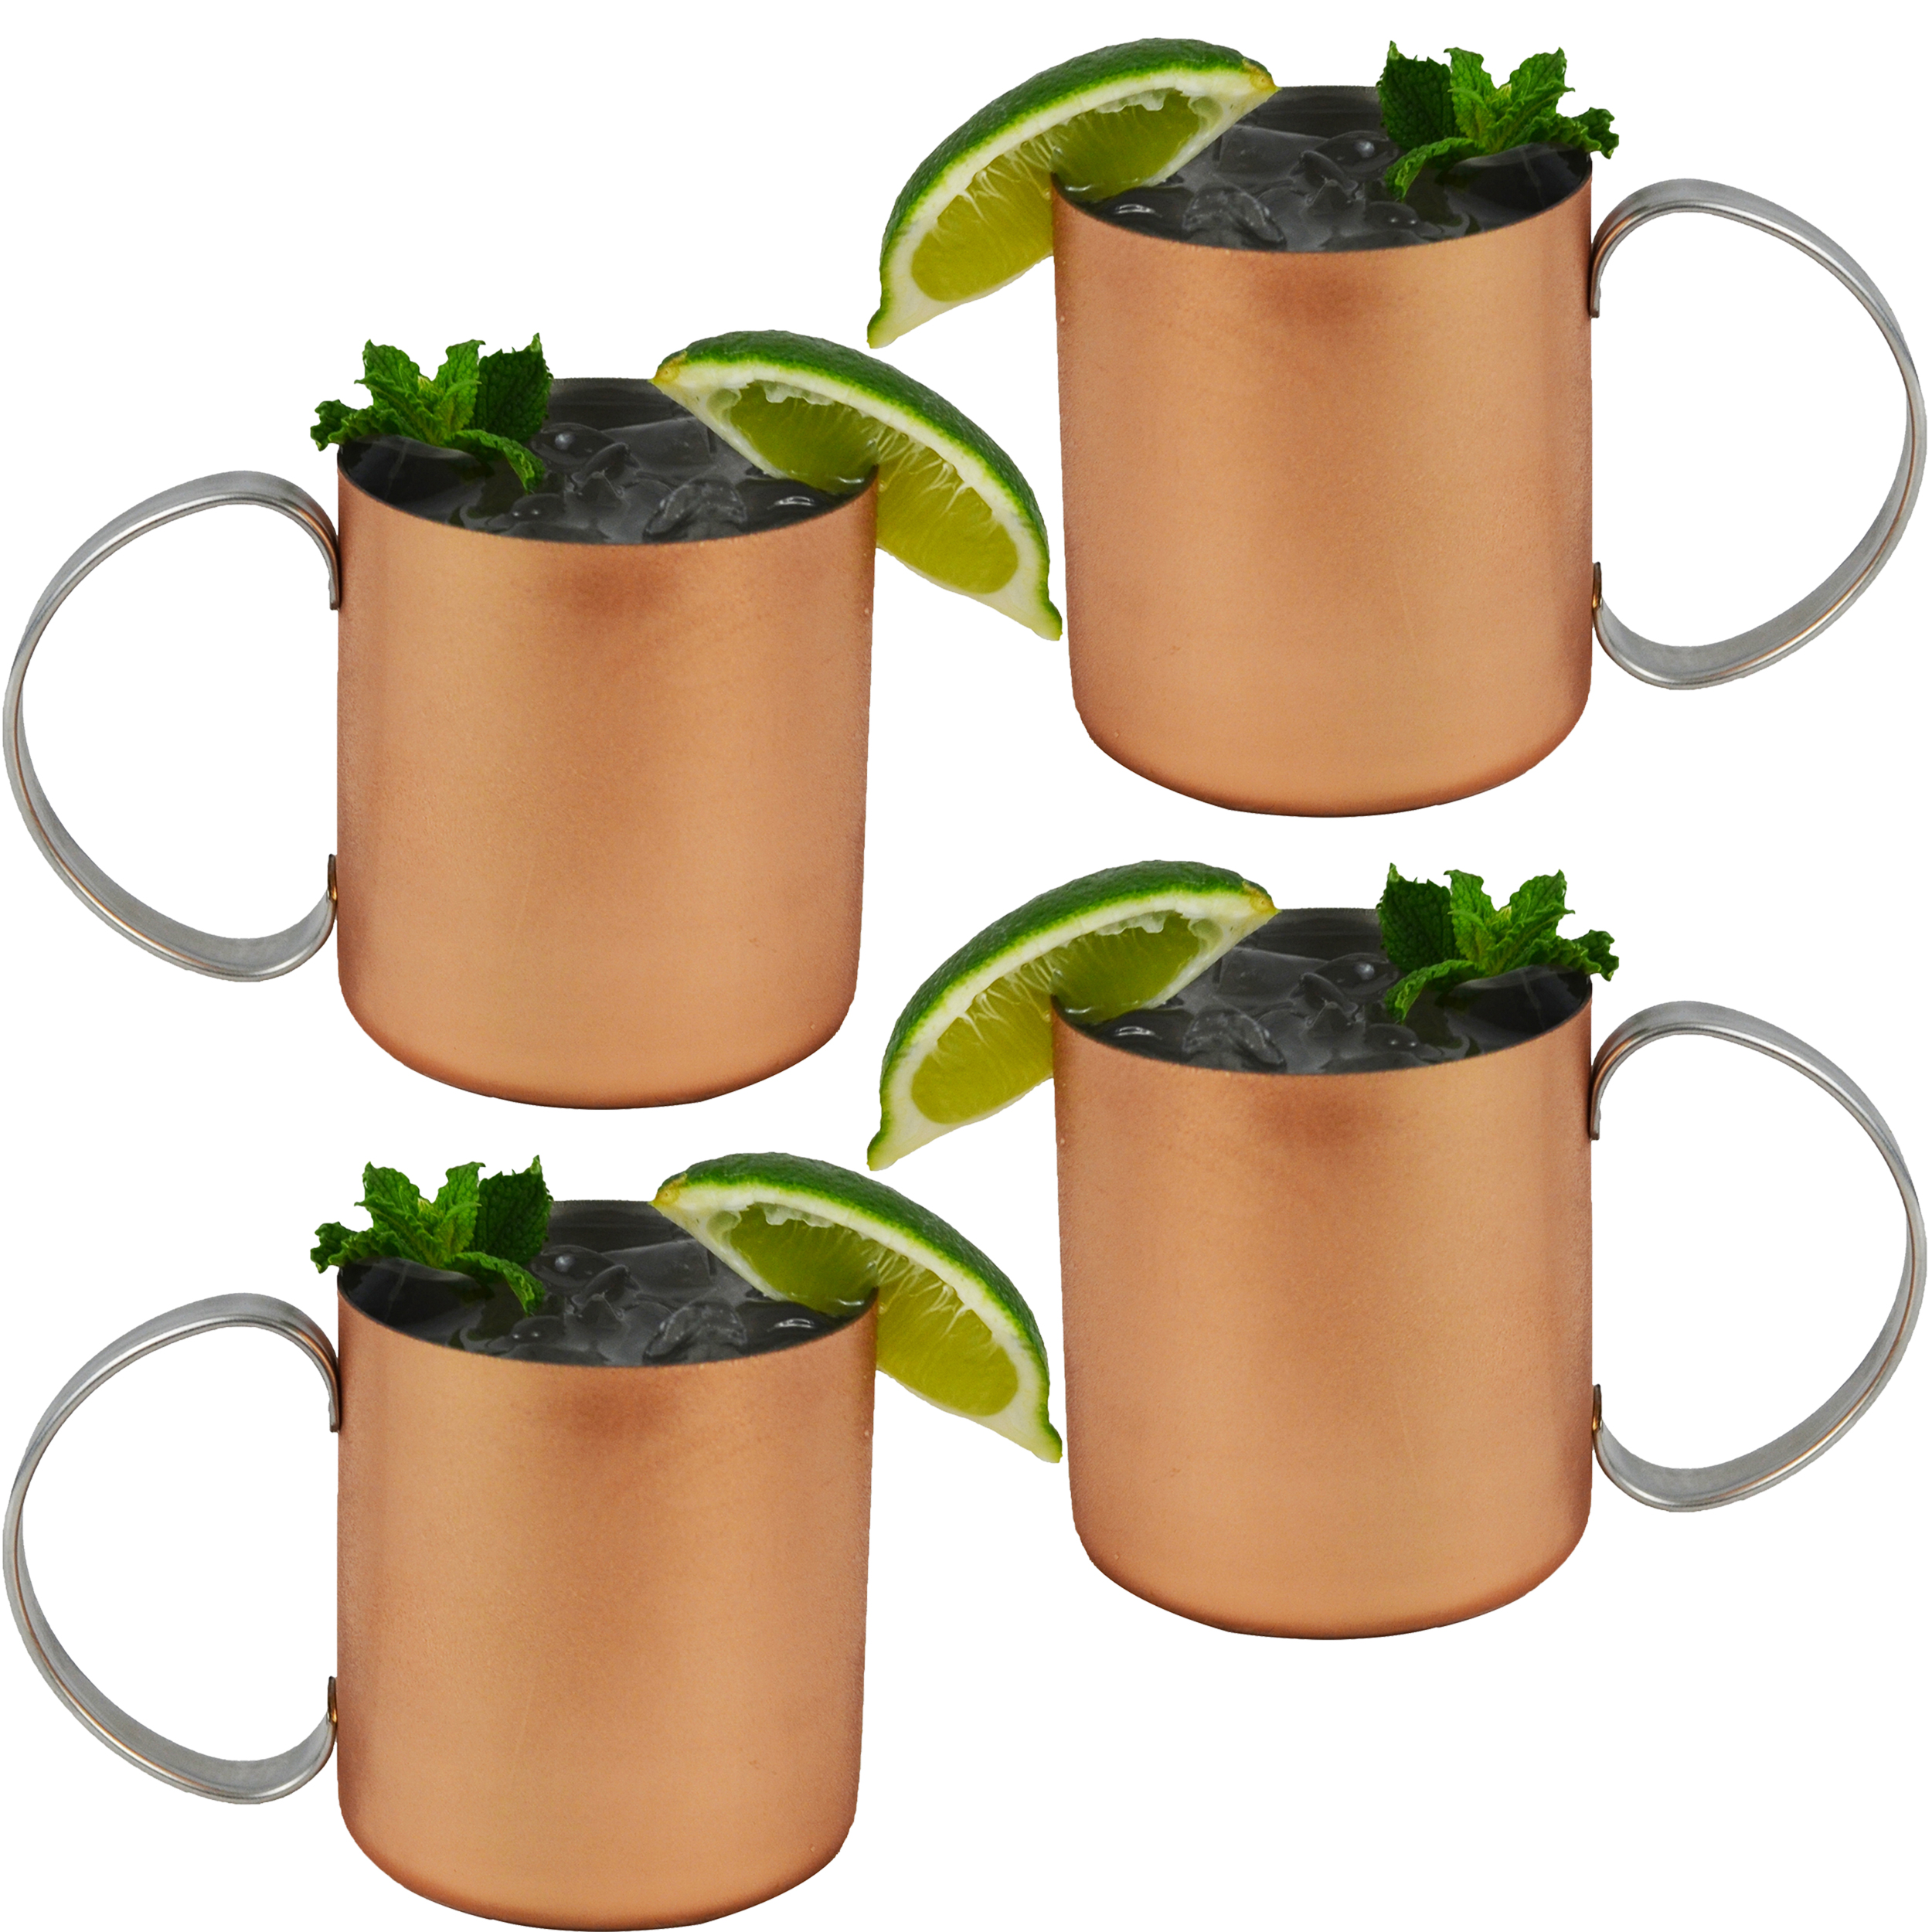 set of 4 copper mug for moscow mules 12 oz copperclad stainless novelty cup - Moscow Mule Copper Mug